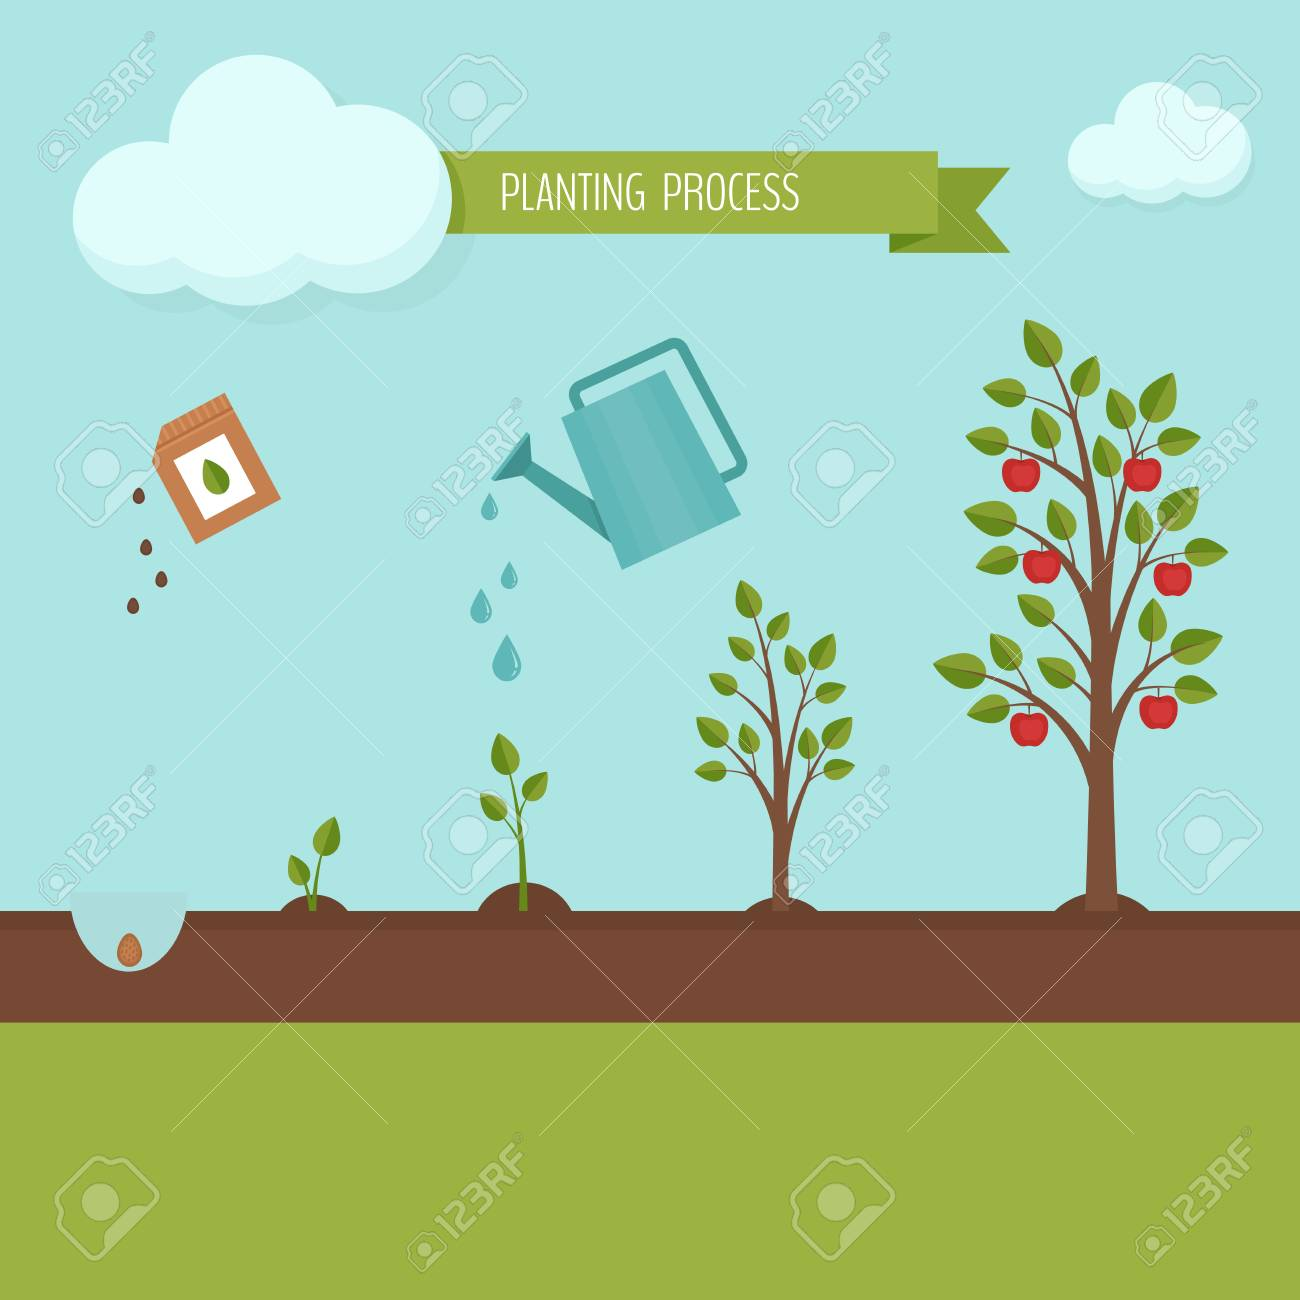 Planting tree process infographic. Apple tree growth stages. Steps of plant growth. Flat design, vector illustration. - 87468381